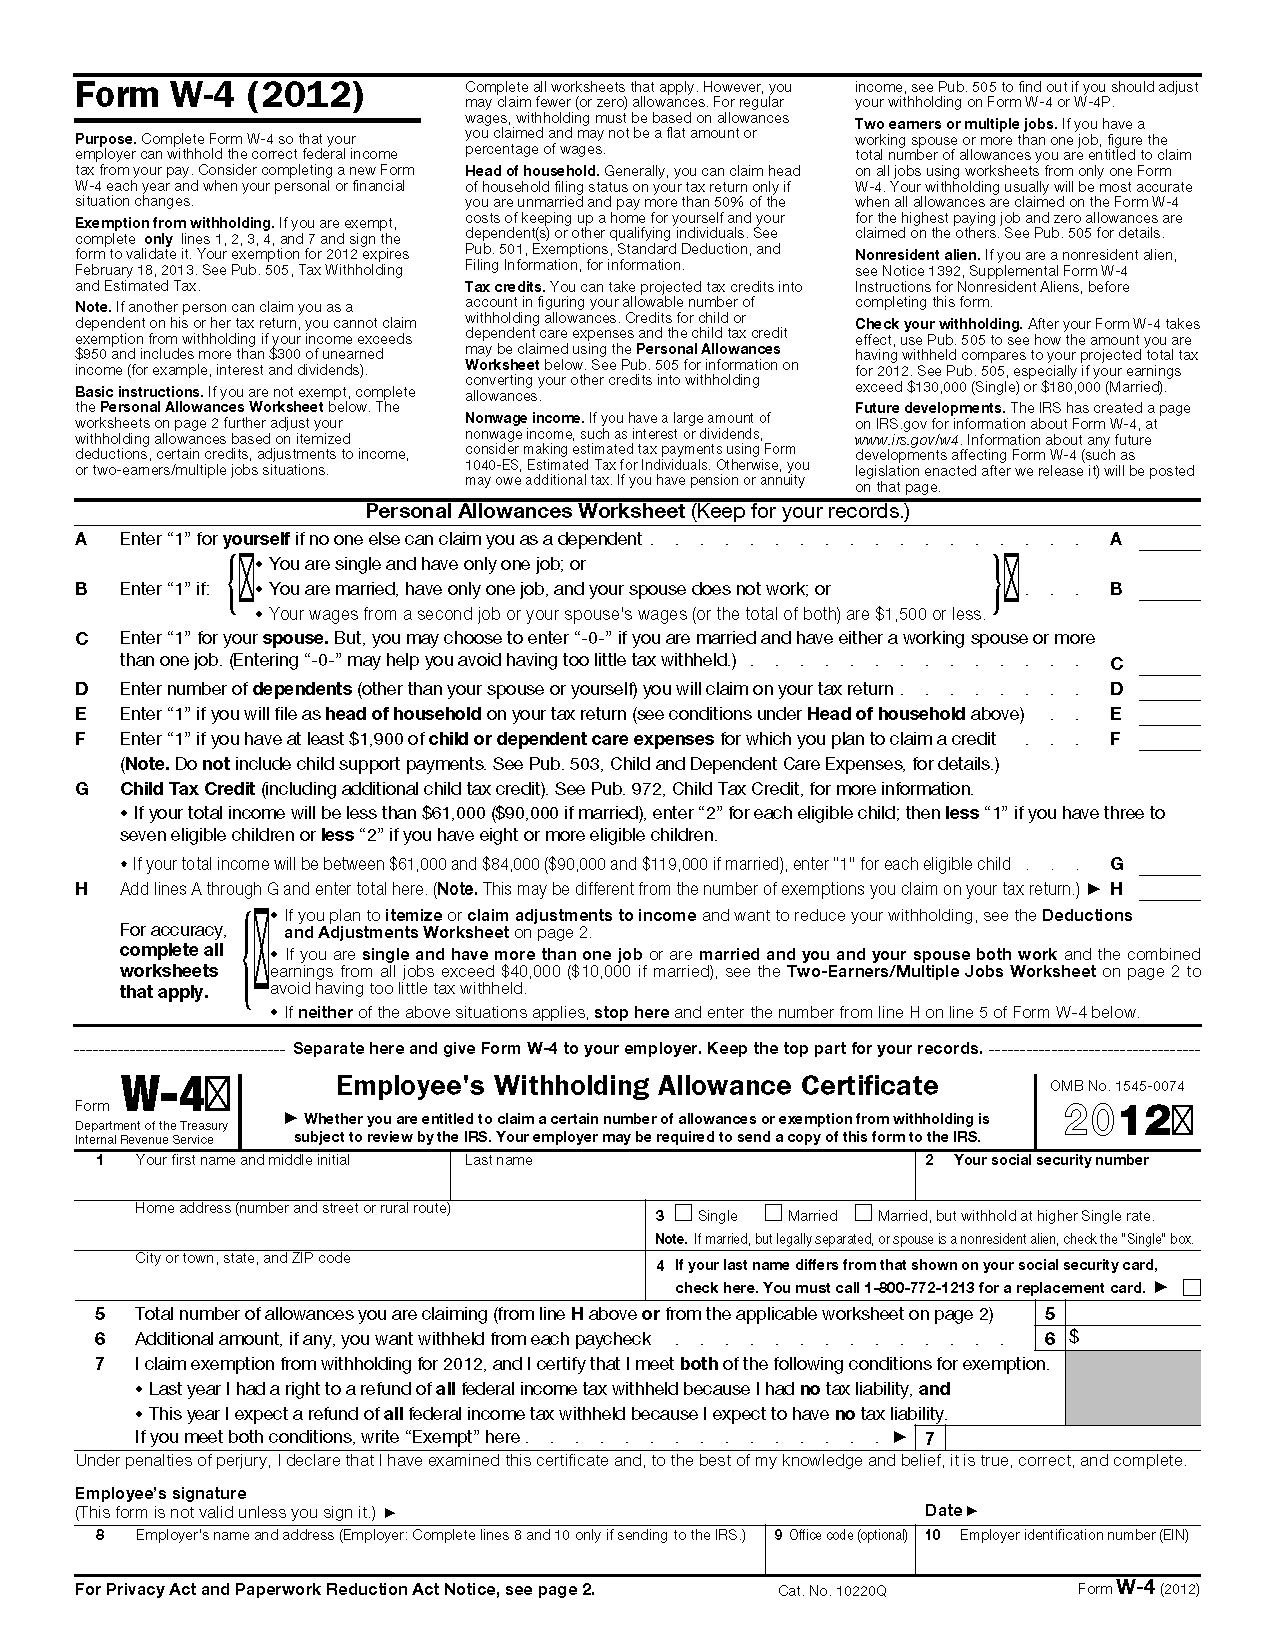 Form W4 Employees Withholding Allowance Certificate – Irs Allowances Worksheet